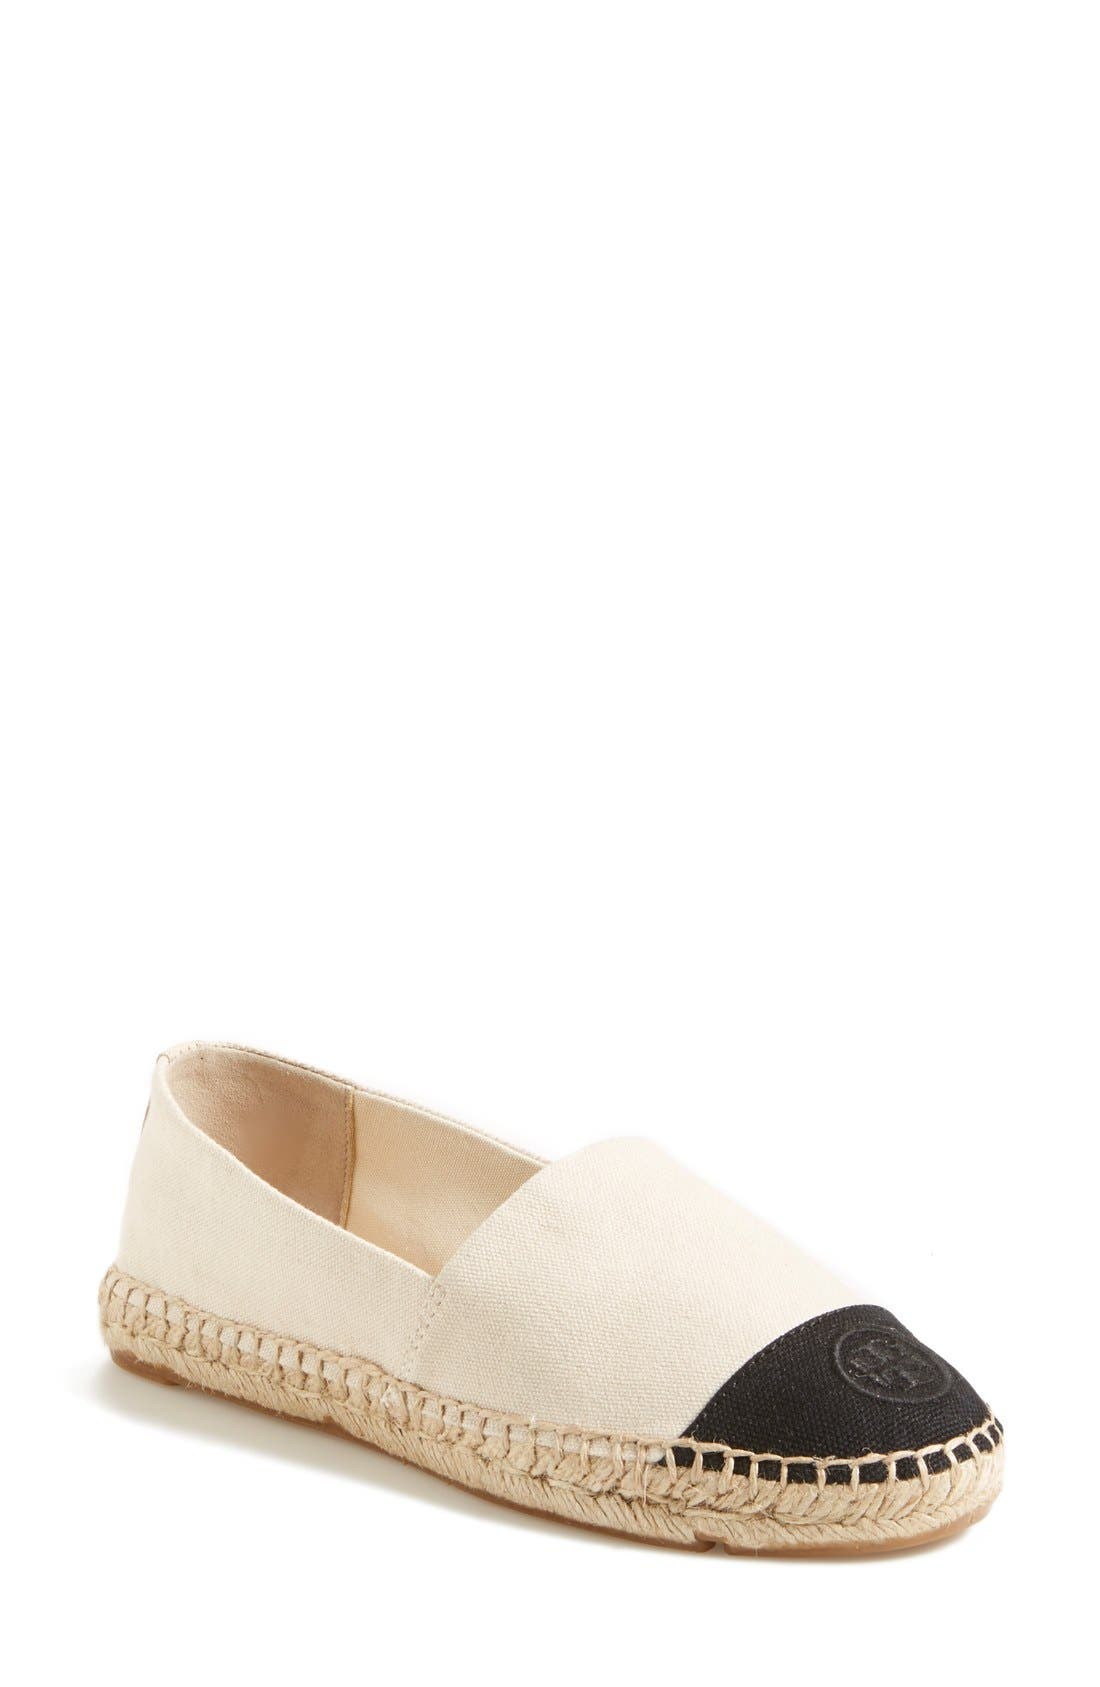 Alternate Image 1 Selected - Tory Burch Canvas Espadrille (Women)